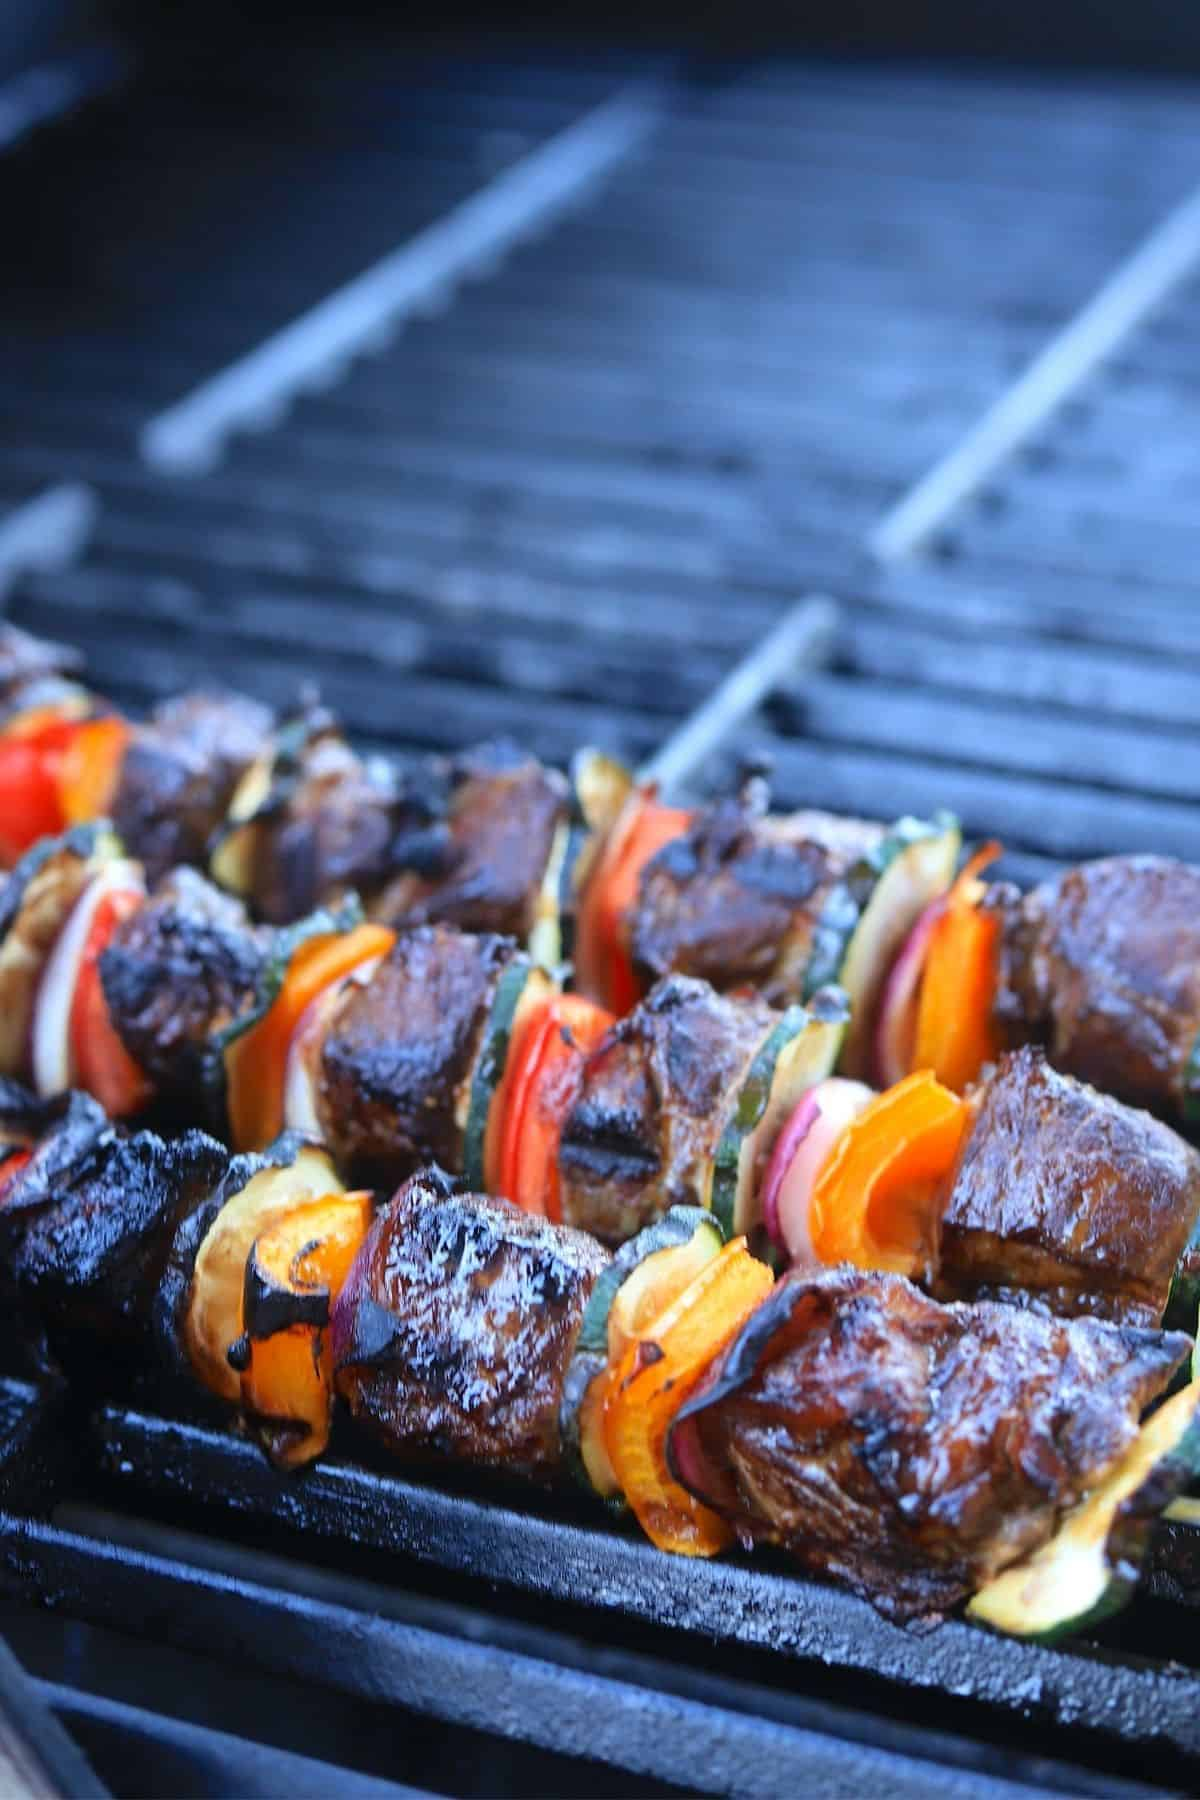 Beef kabobs fully cooked on the grill